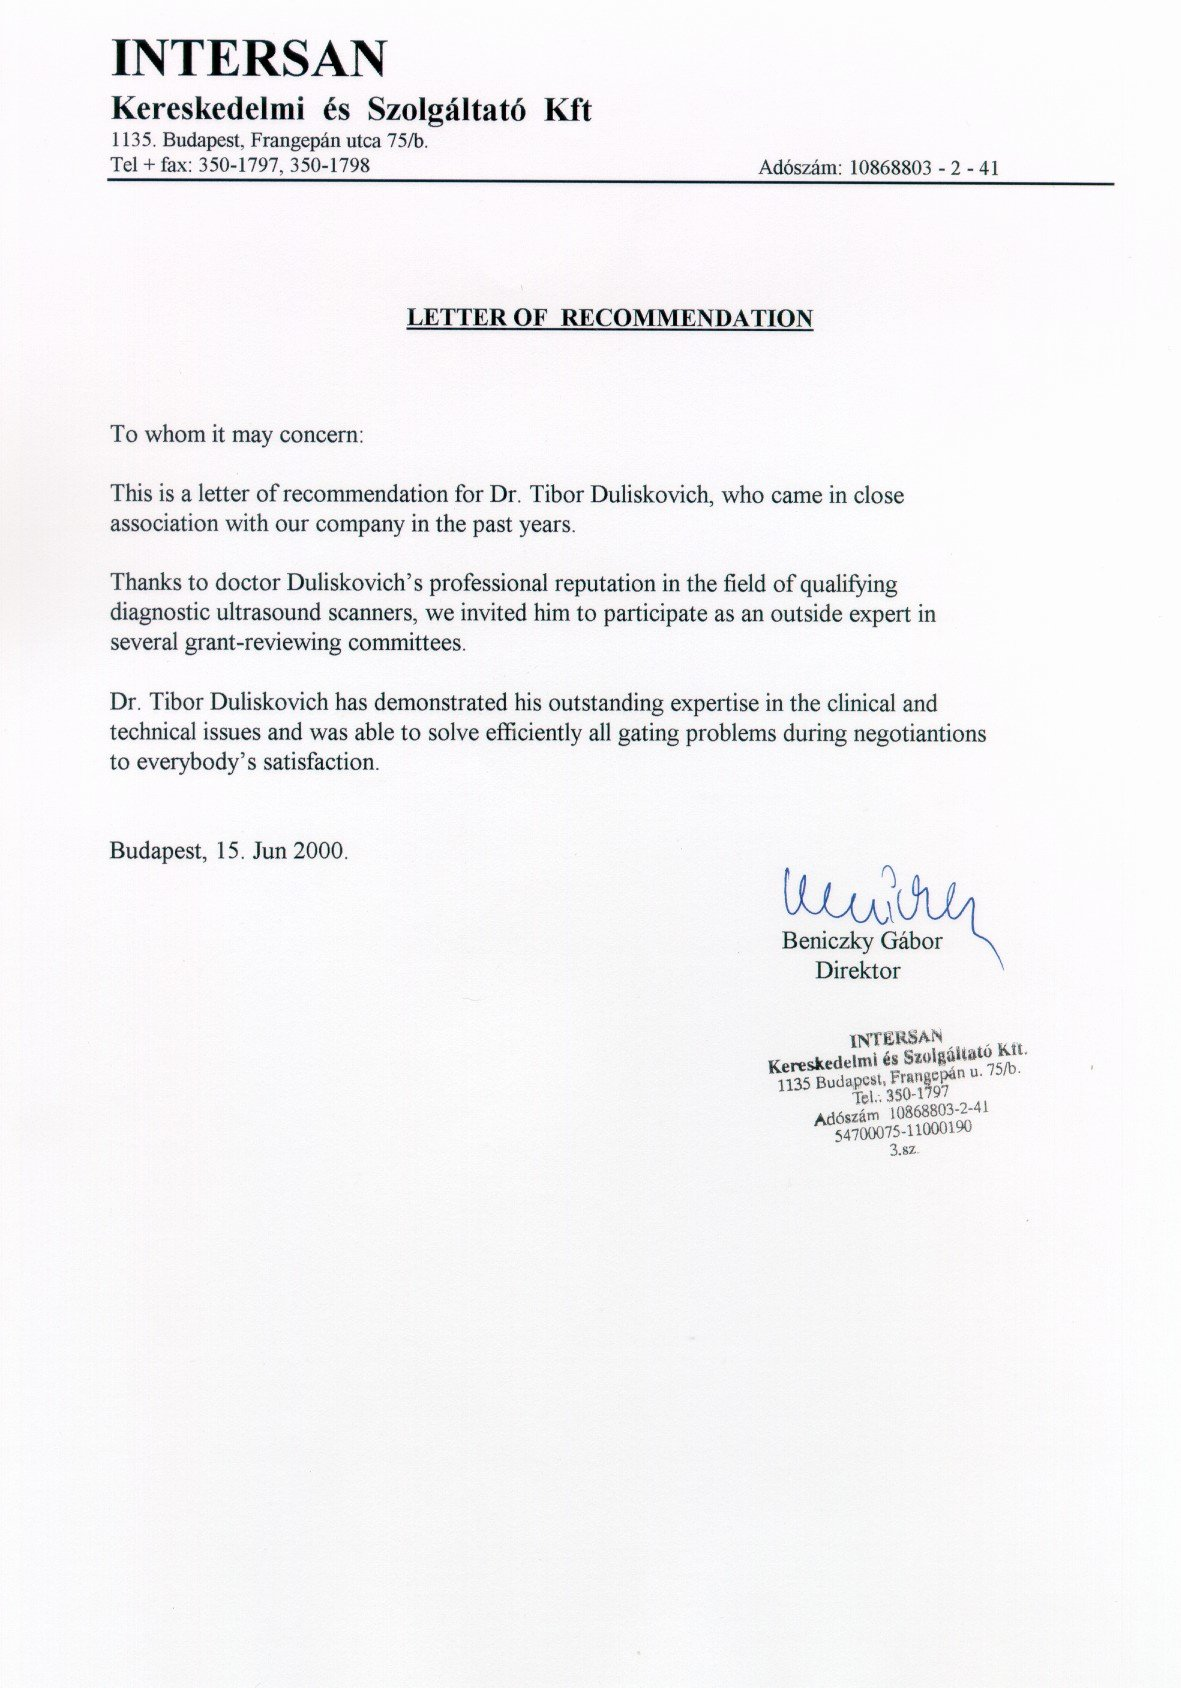 Recommendation Letter for Medical assistant Inspirational Re Mendation Letter for Medical assistant